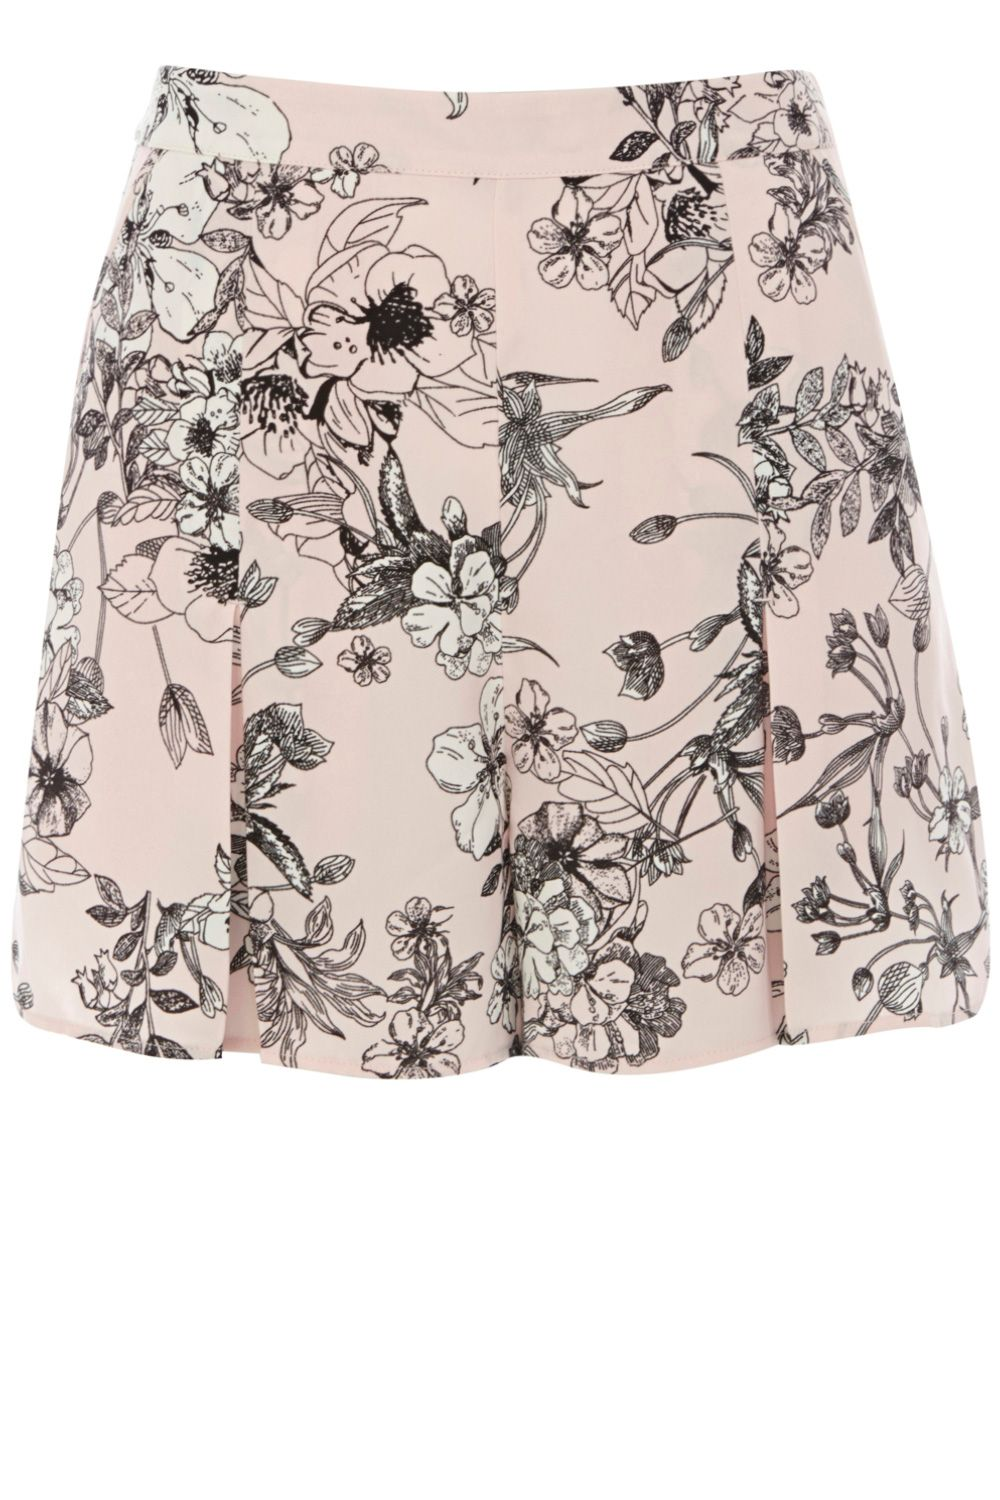 Drawn floral 40s shorts